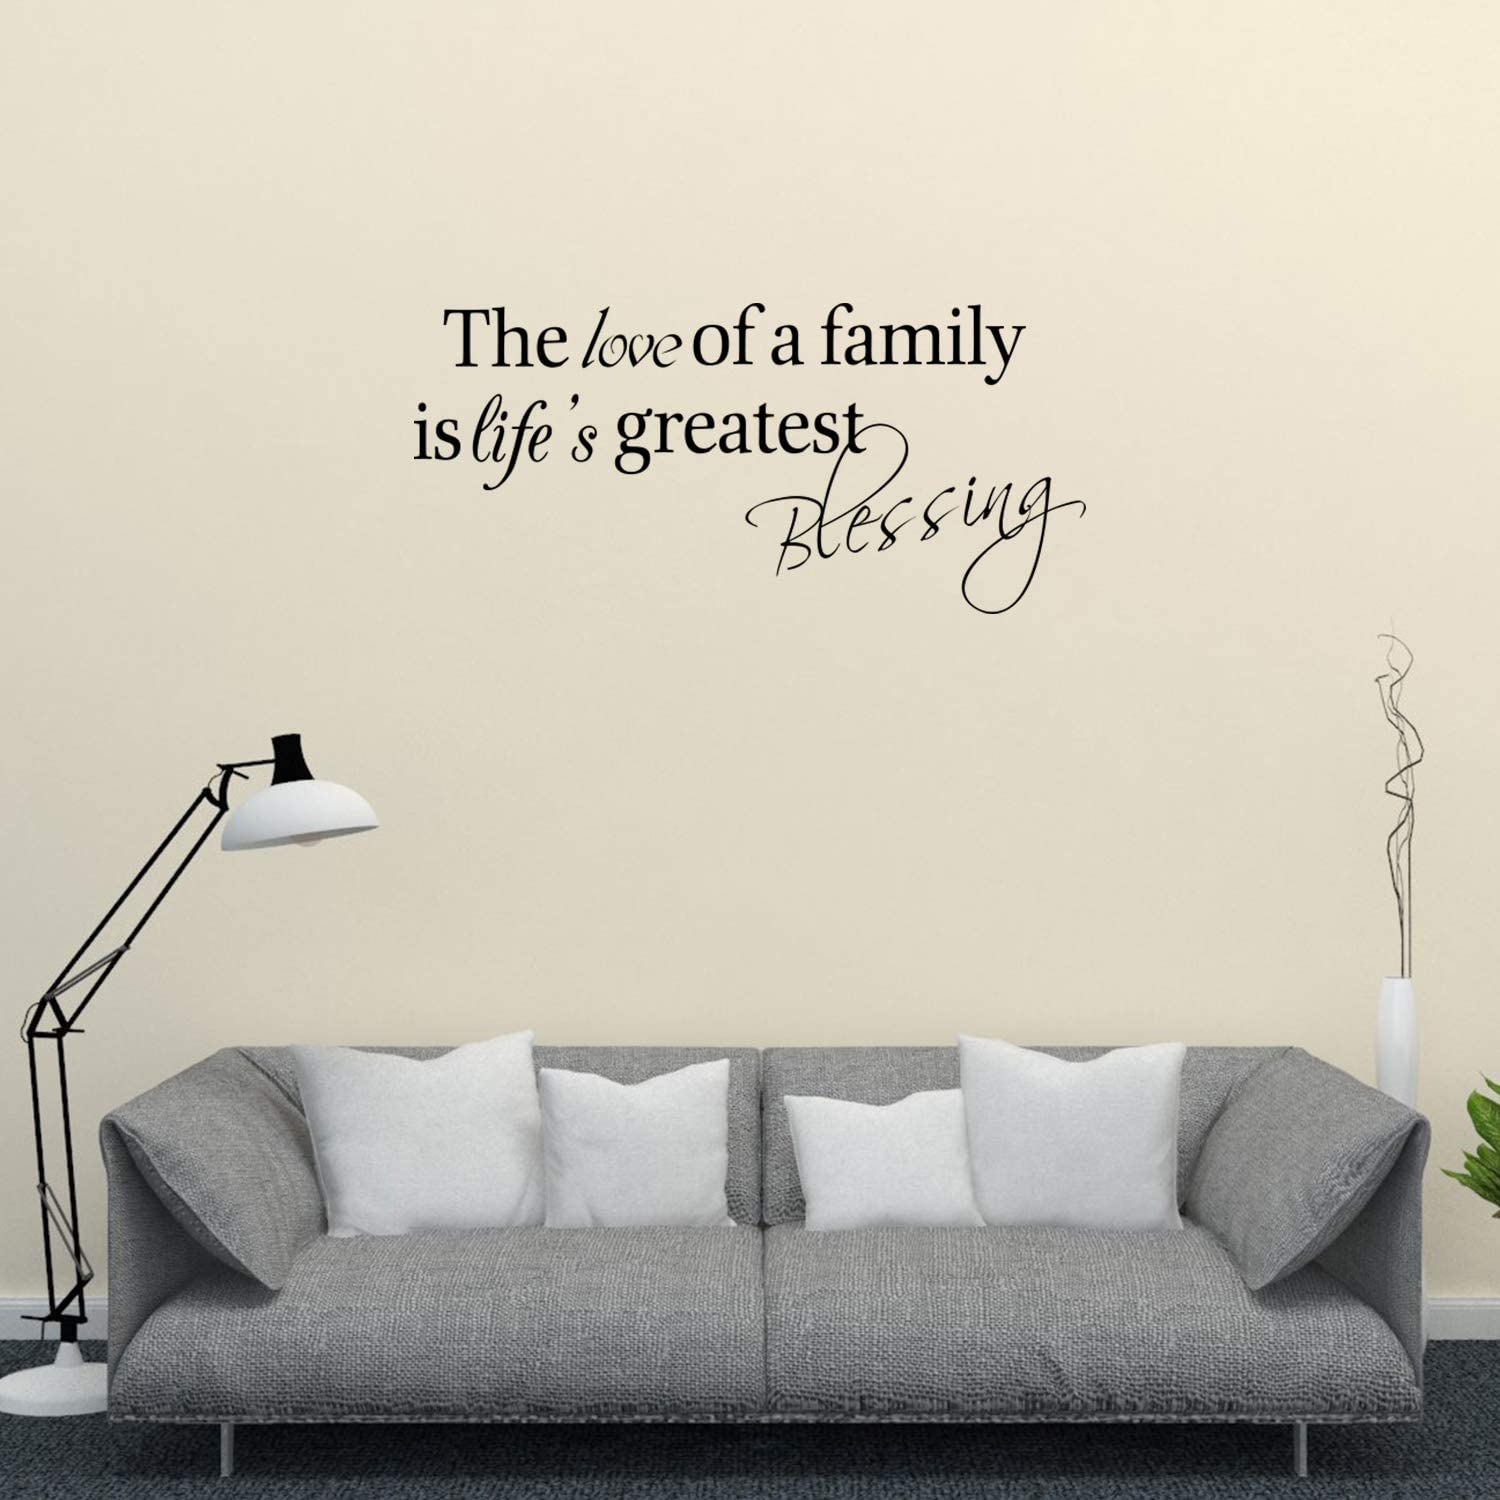 Empresal The Love of a Family is Life's Greatest Blessing Wall Decal Home Sticker Decor Lettering Sign Art